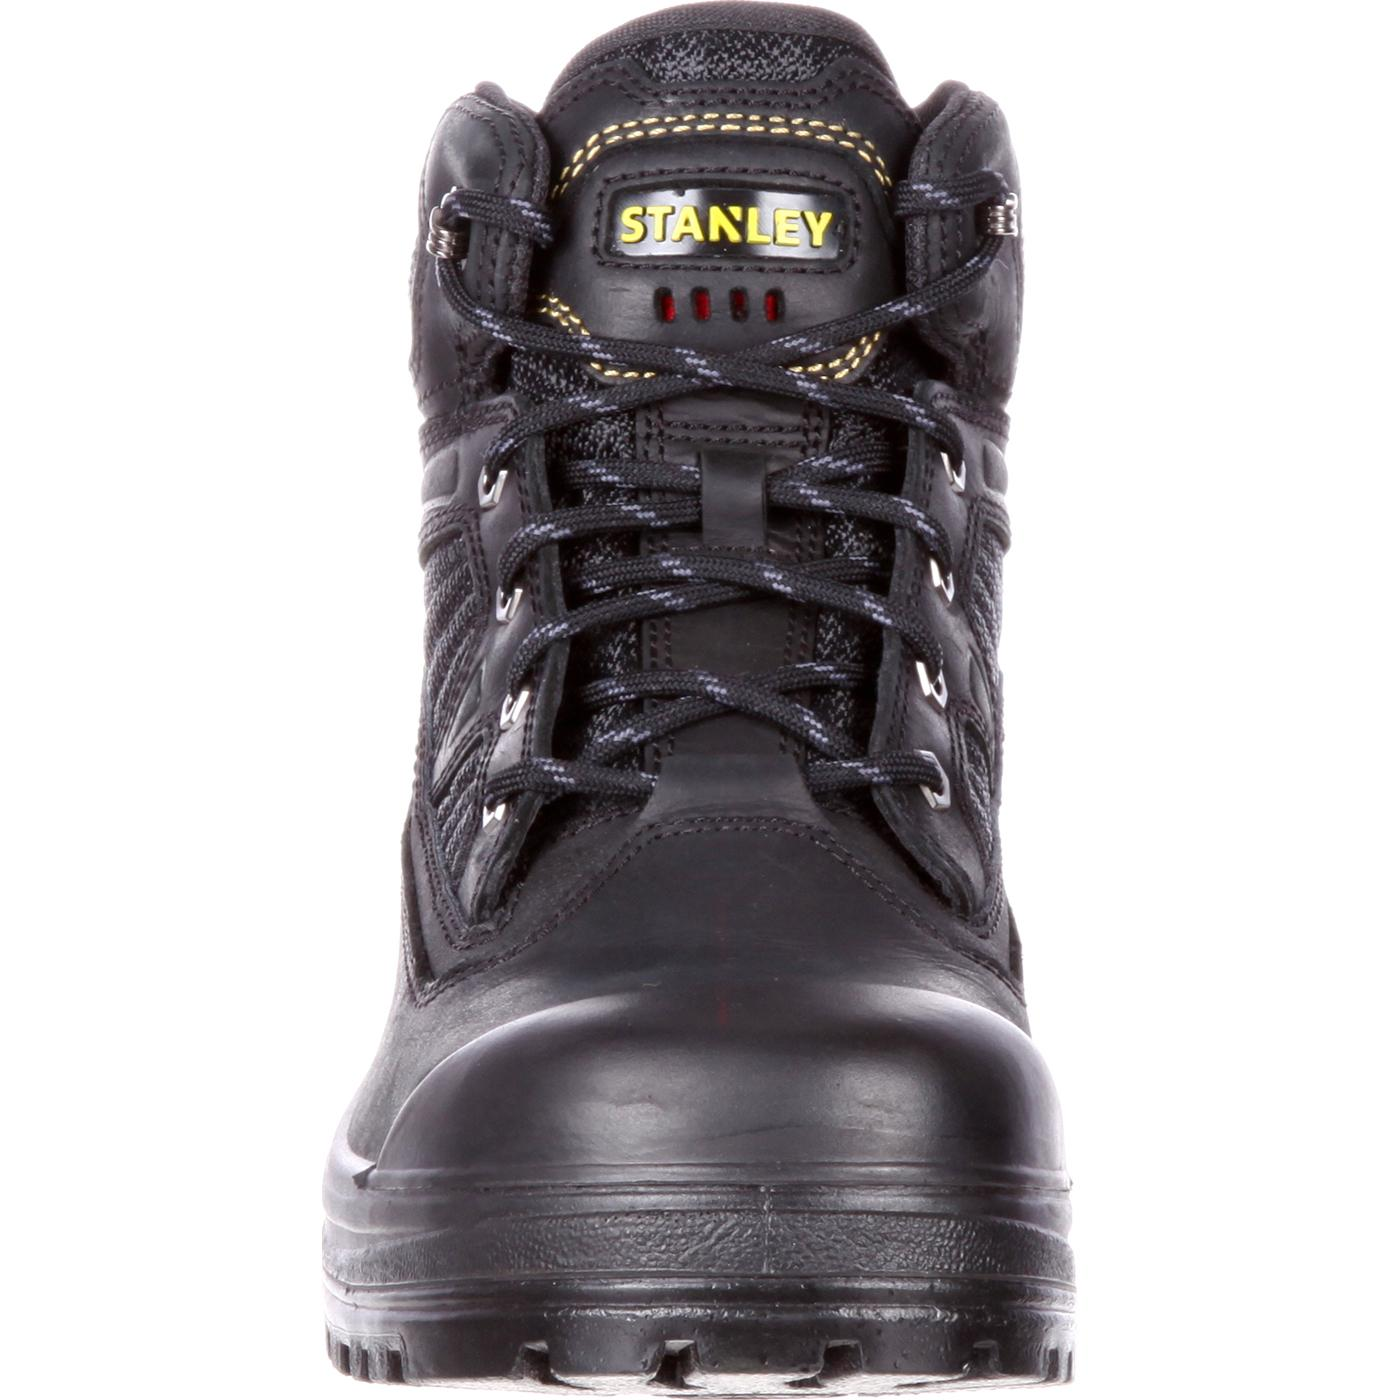 ddd54f55c2a Stanley Assure Steel Toe Work Boot